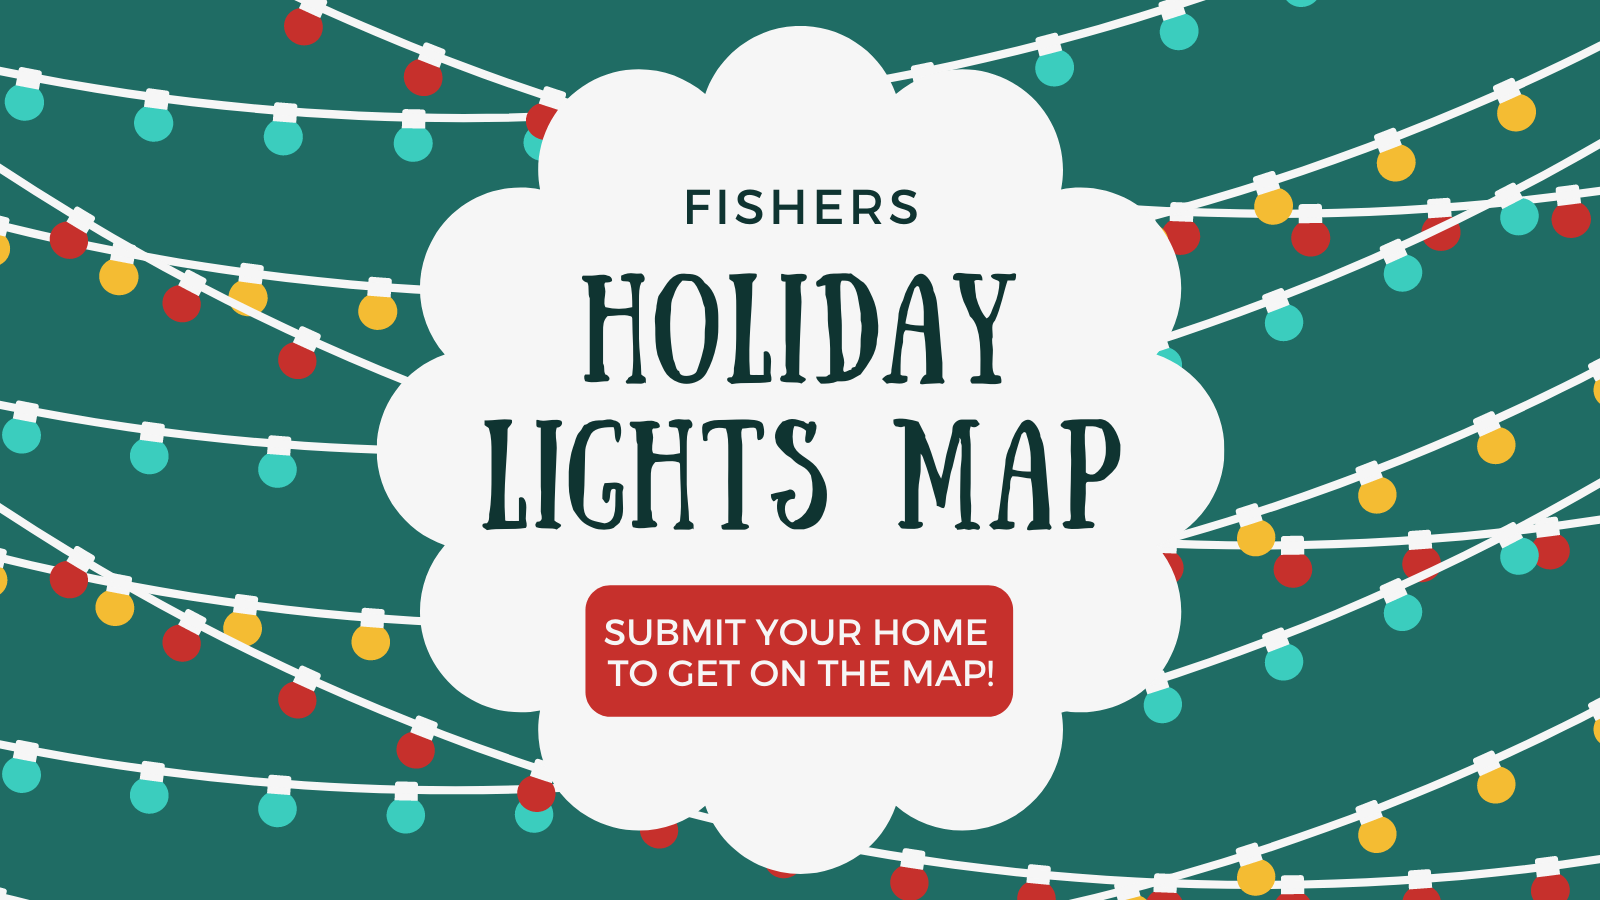 fishers holiday lights map. submit your home to get on the map